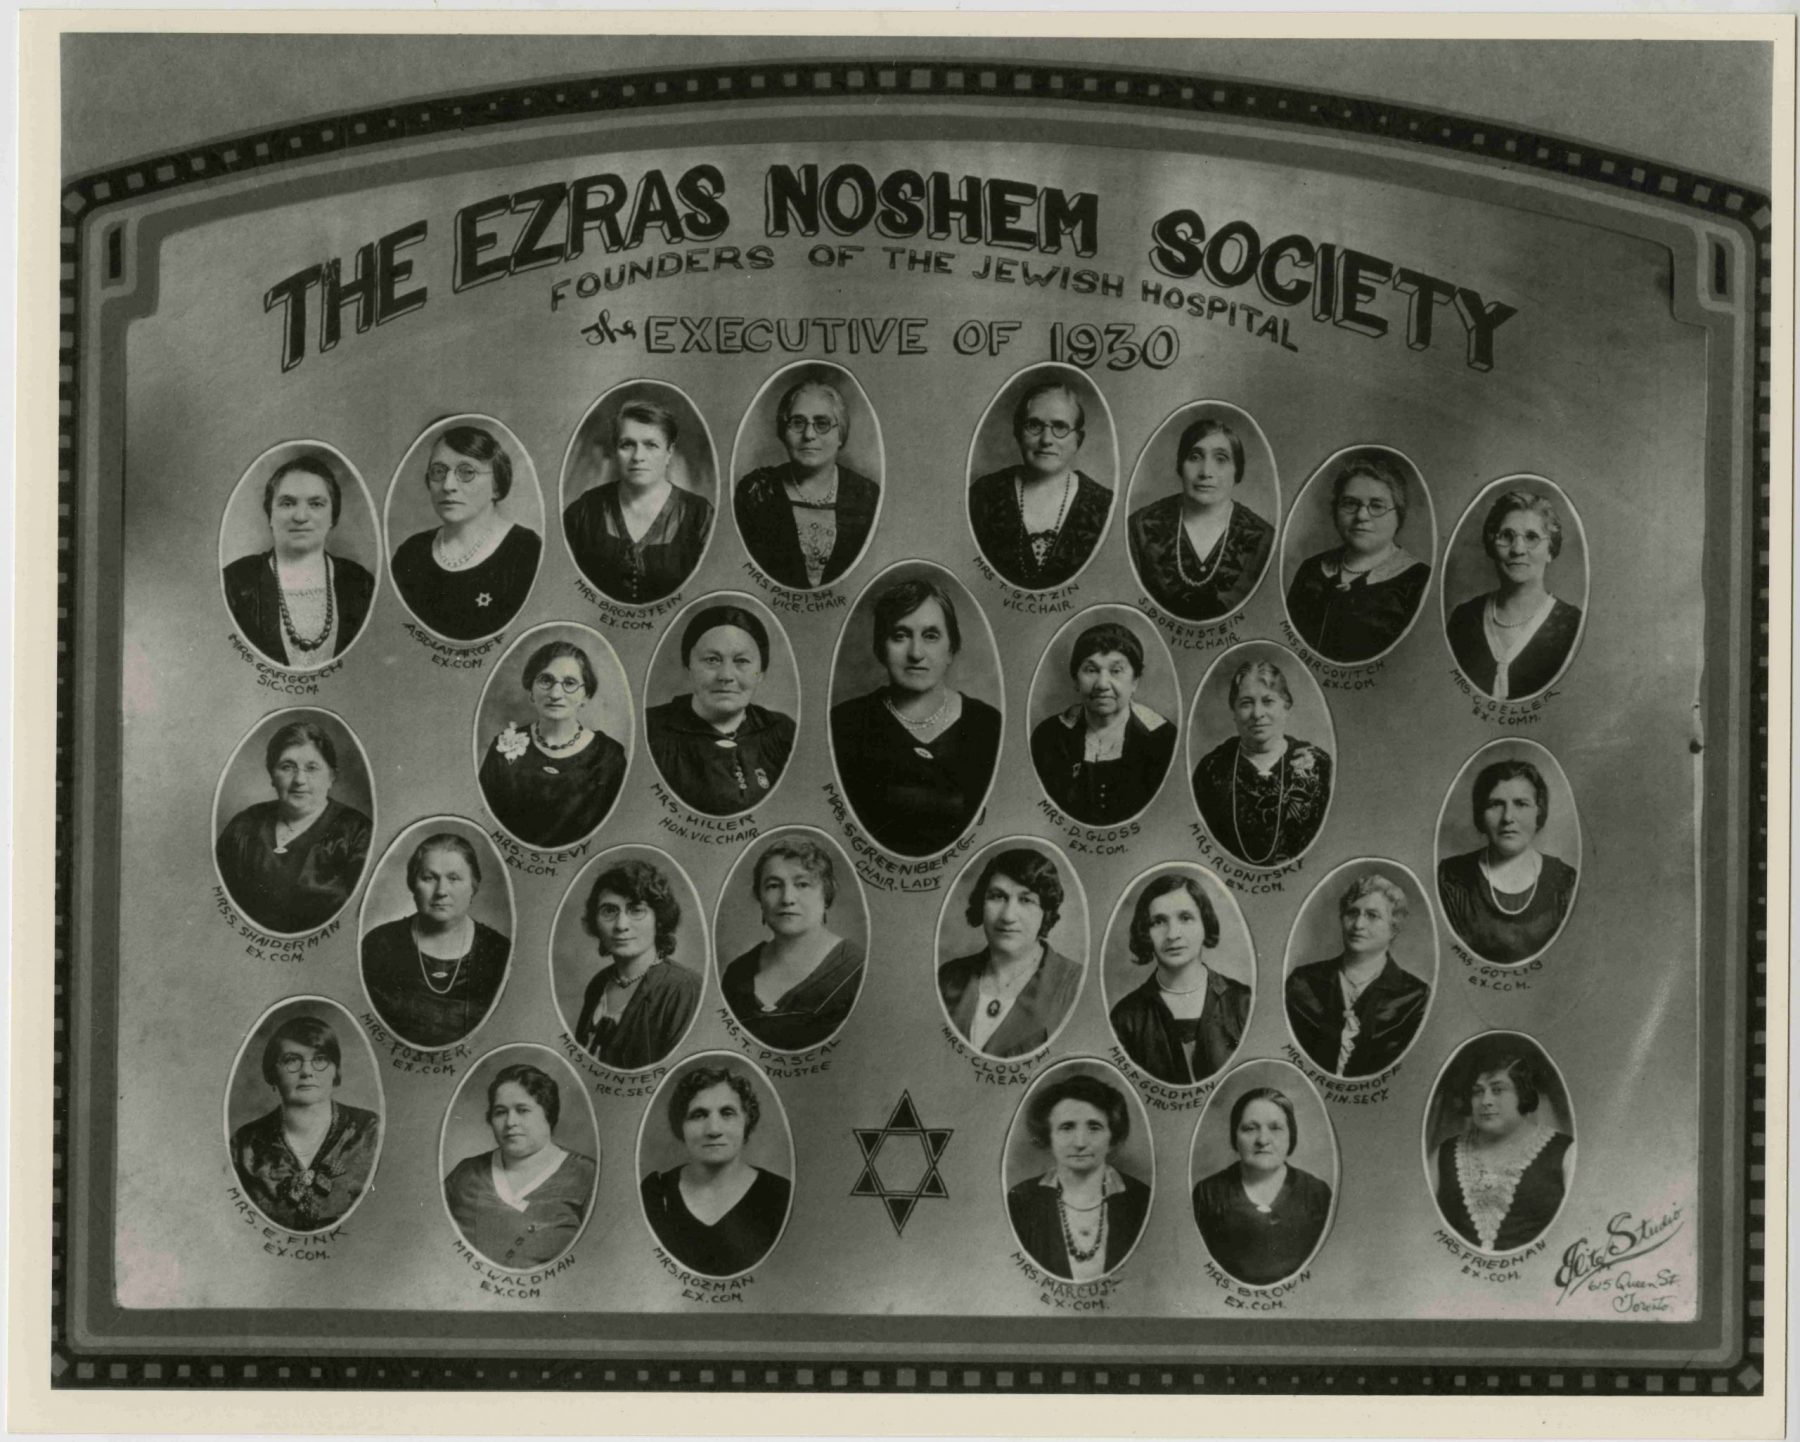 The Ezras Noshem Society Executive from 1930. The mutual benefit society was established in 1913, and their work aided the establishment of the Jewish Old Folks' Home and the founding of Mount Sinai Hospital at its first location on Yorkville Avenue in 1921.  OJA, item 3704.